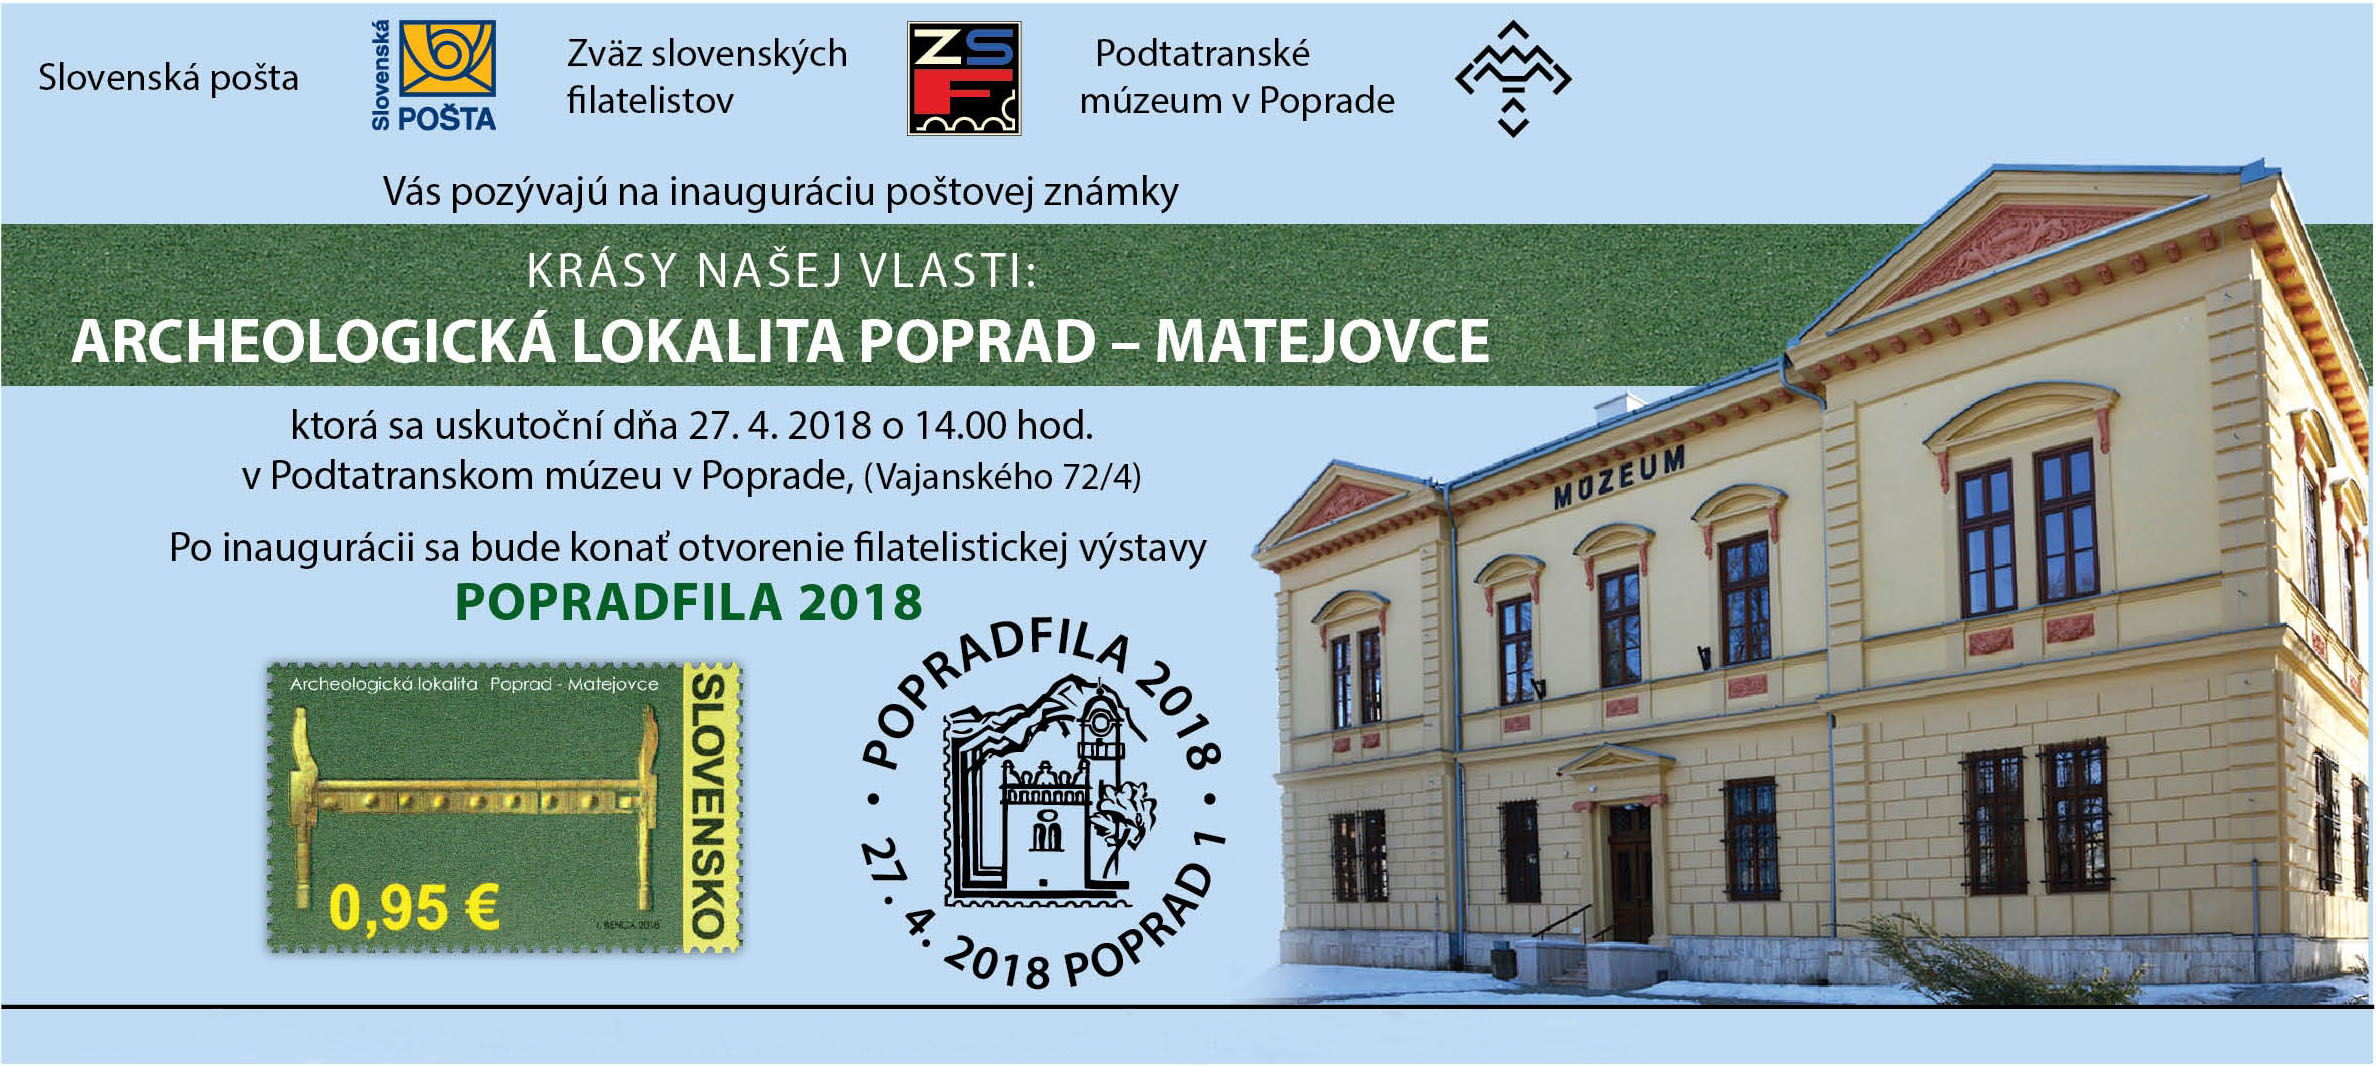 Stamp Inaugurations Ceremonial inauguration of the postage stamp Beauties of our Homeland: Archeological site Poprad-Matejovce in Poprad